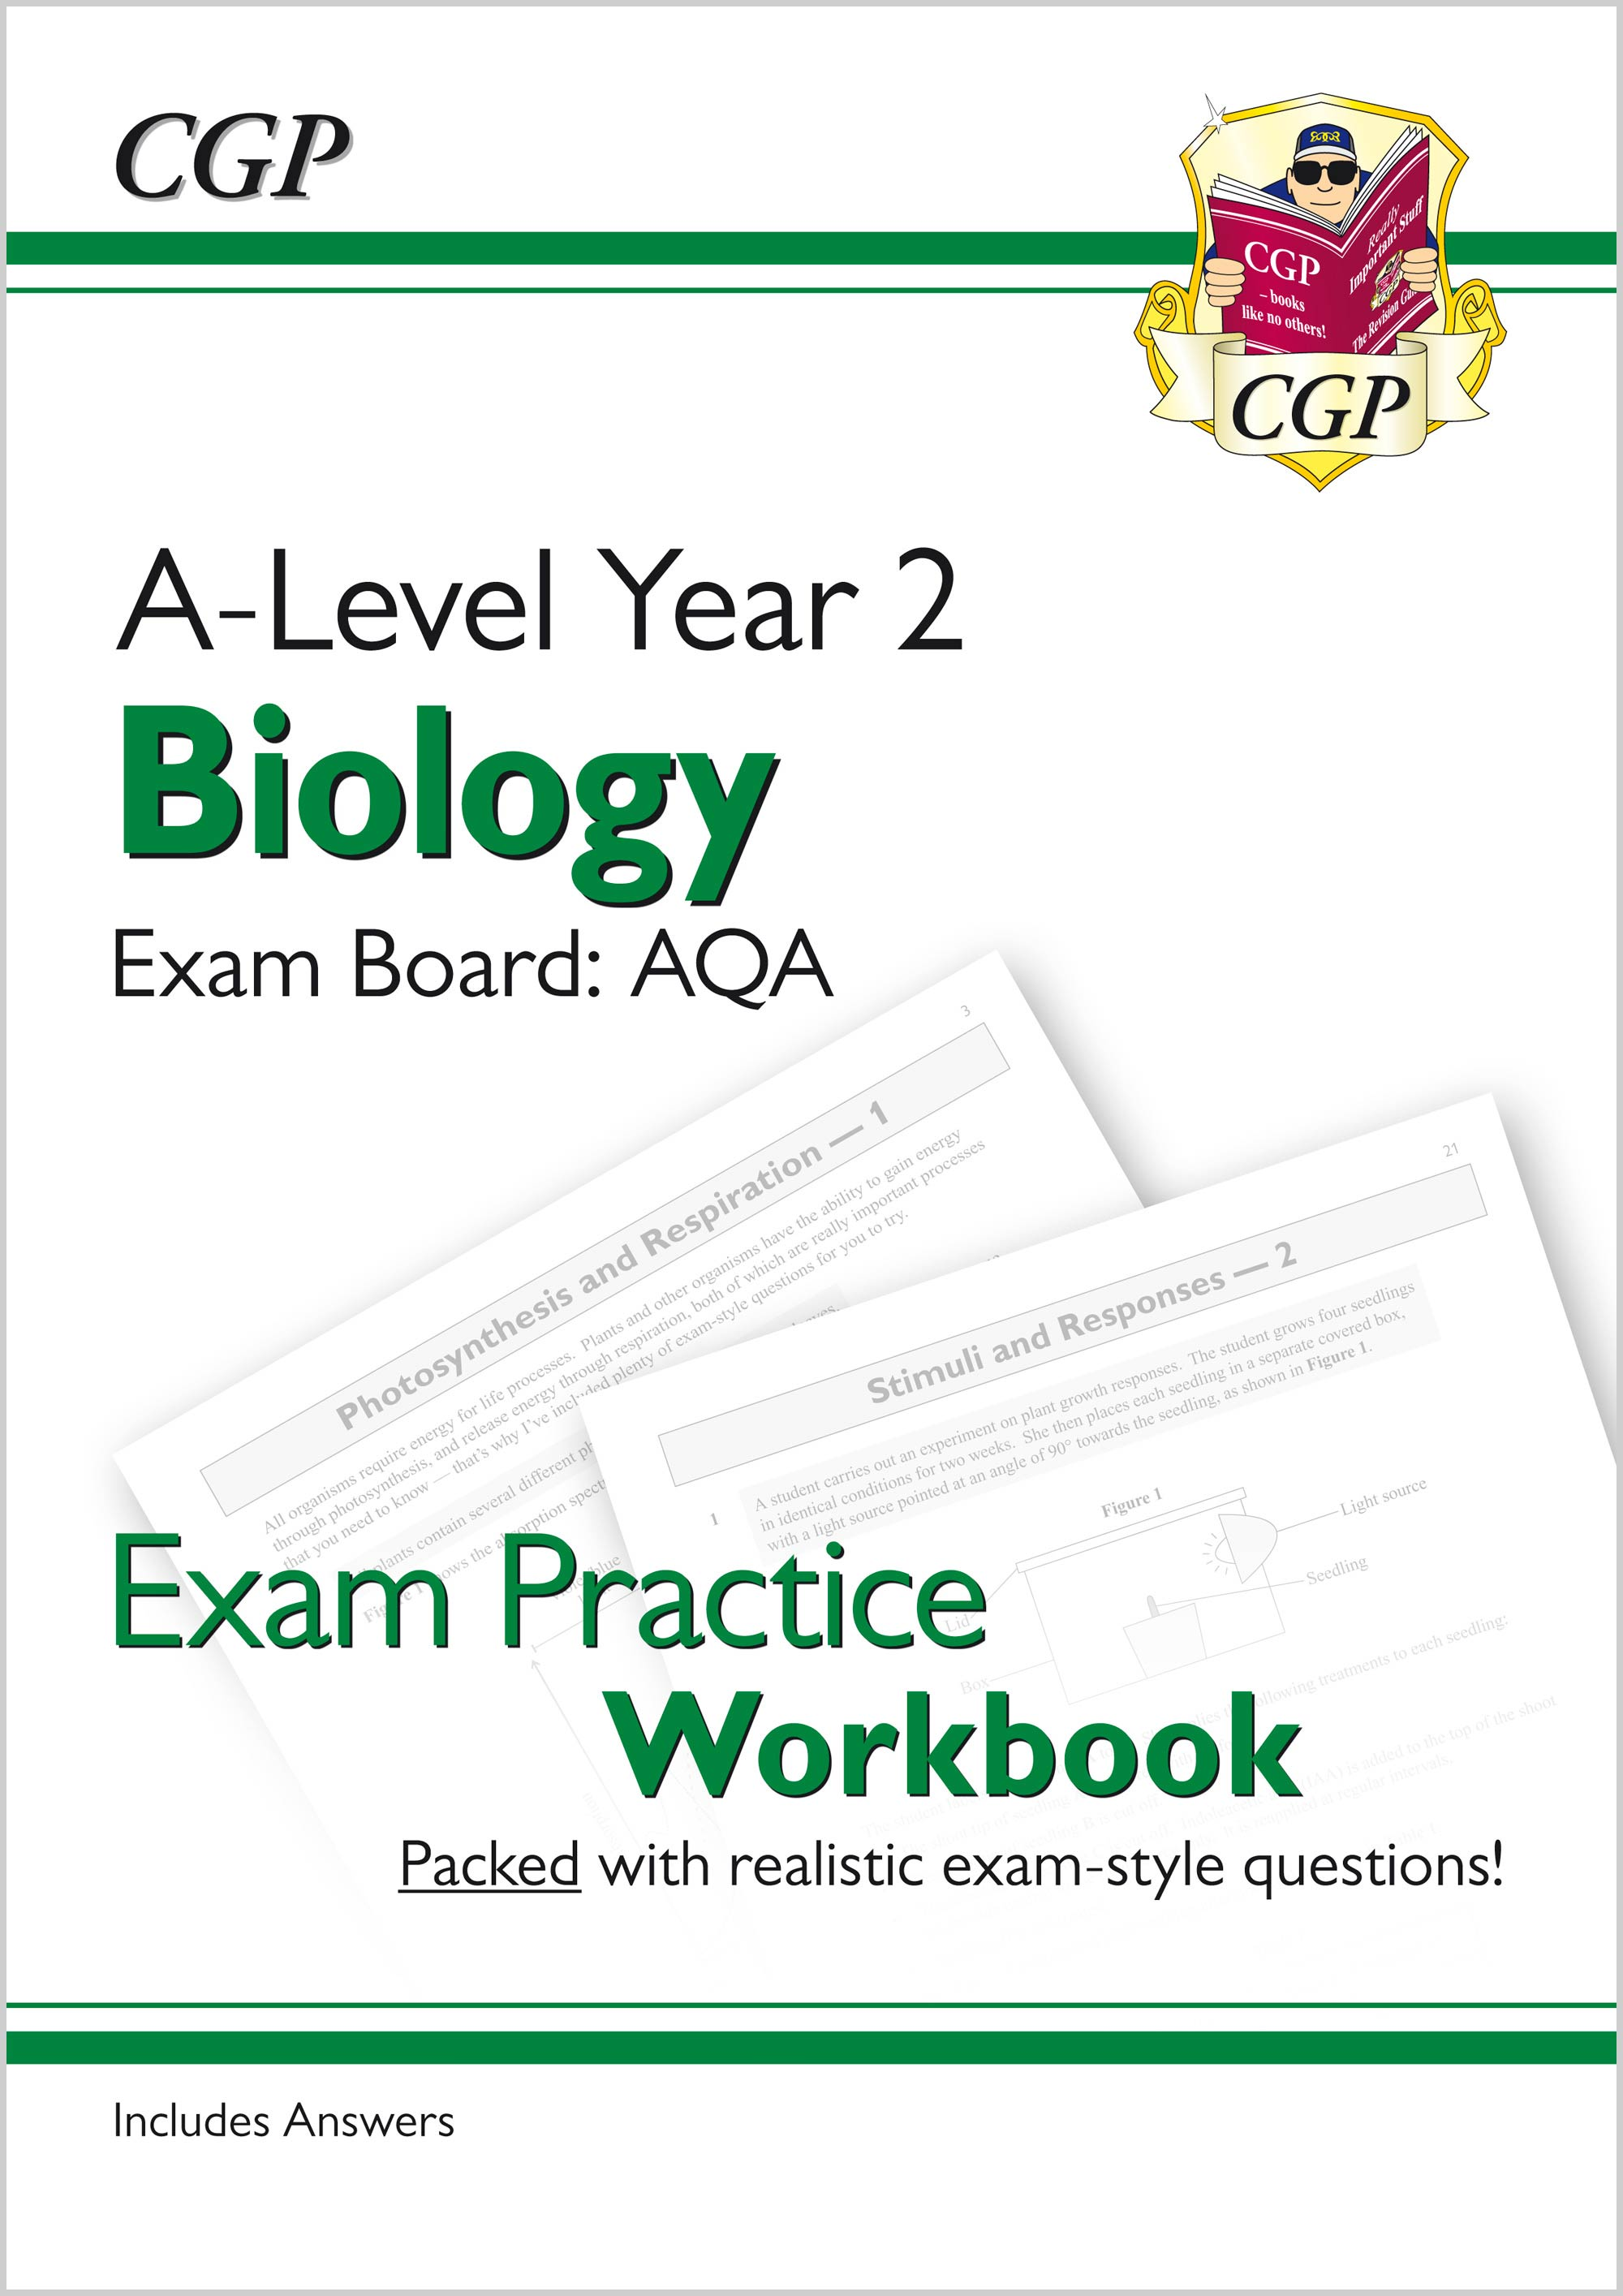 BAQ61 - New A-Level Biology: AQA Year 2 Exam Practice Workbook - includes Answers